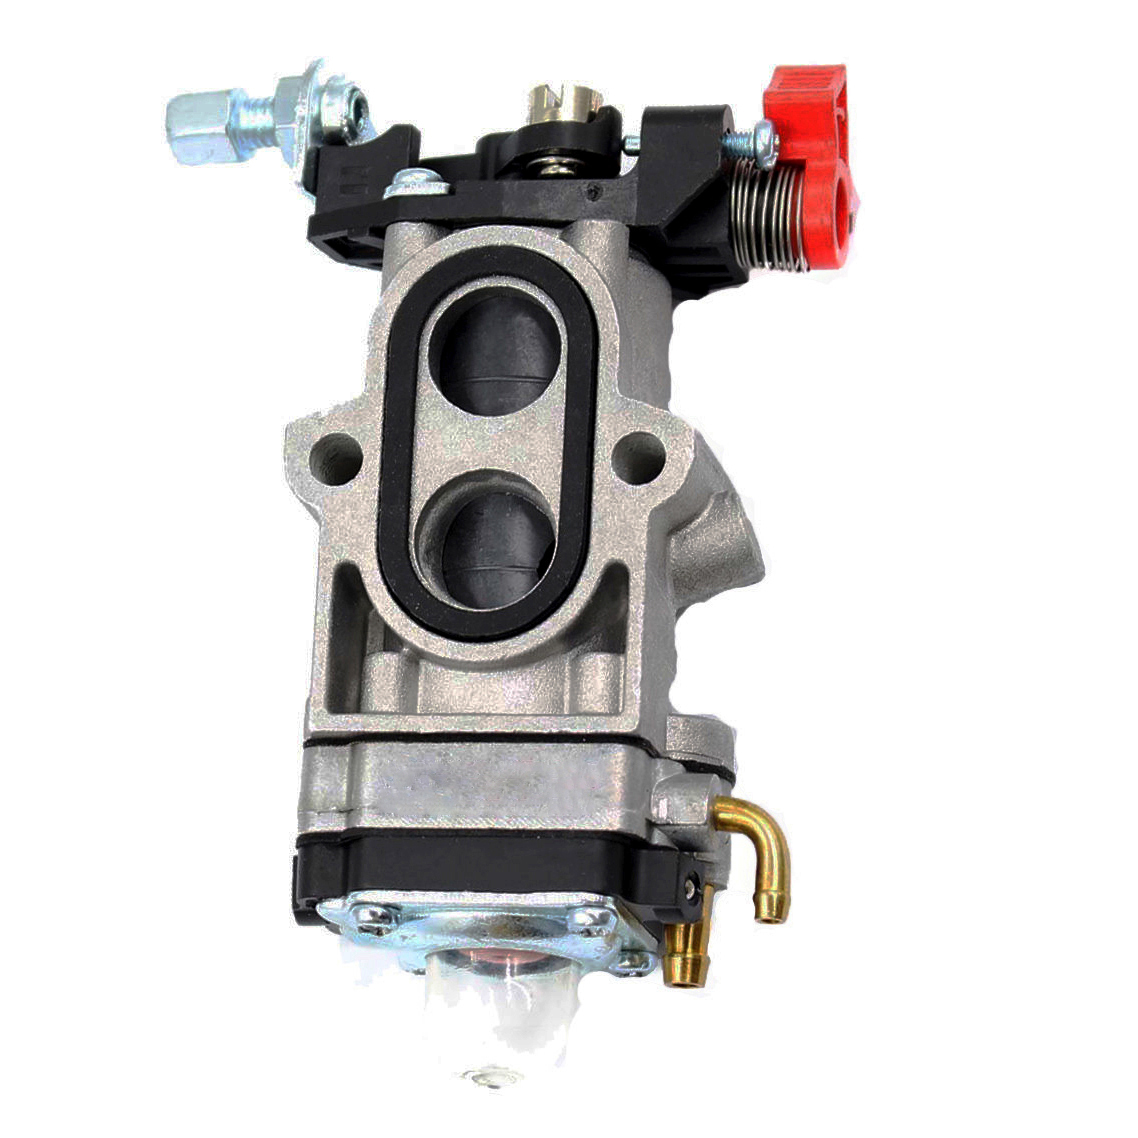 Walbro Carburetor WYA-81-1 for Red Max EBZ7100RH Backpack Blower & Red Max 511460001